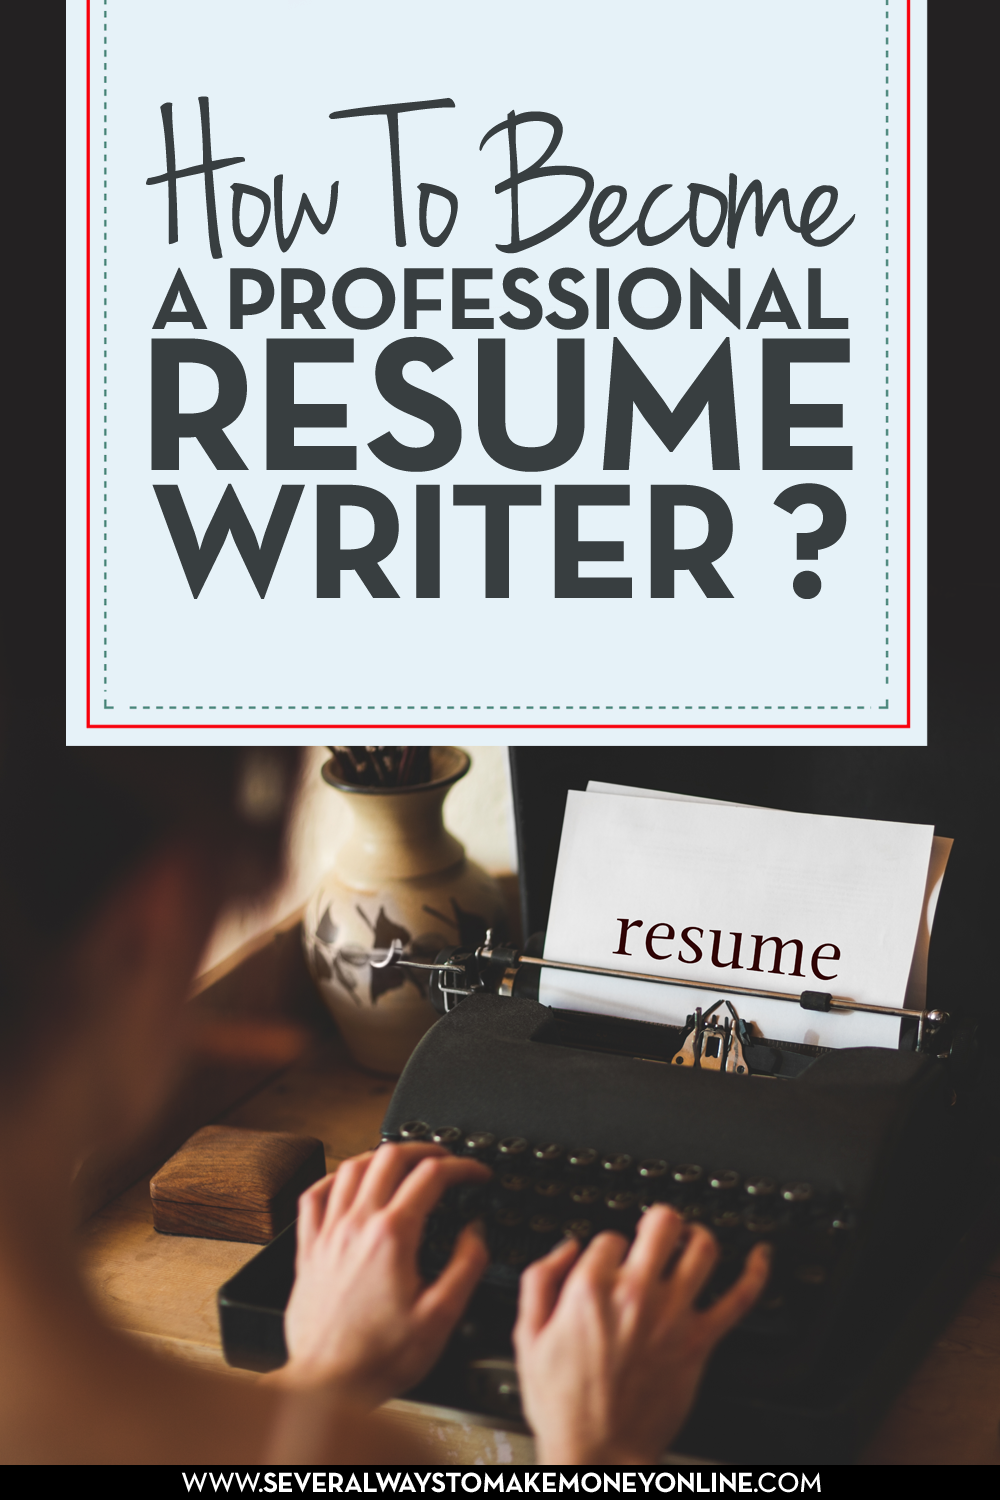 Learn how to a professional resume writer. Resume